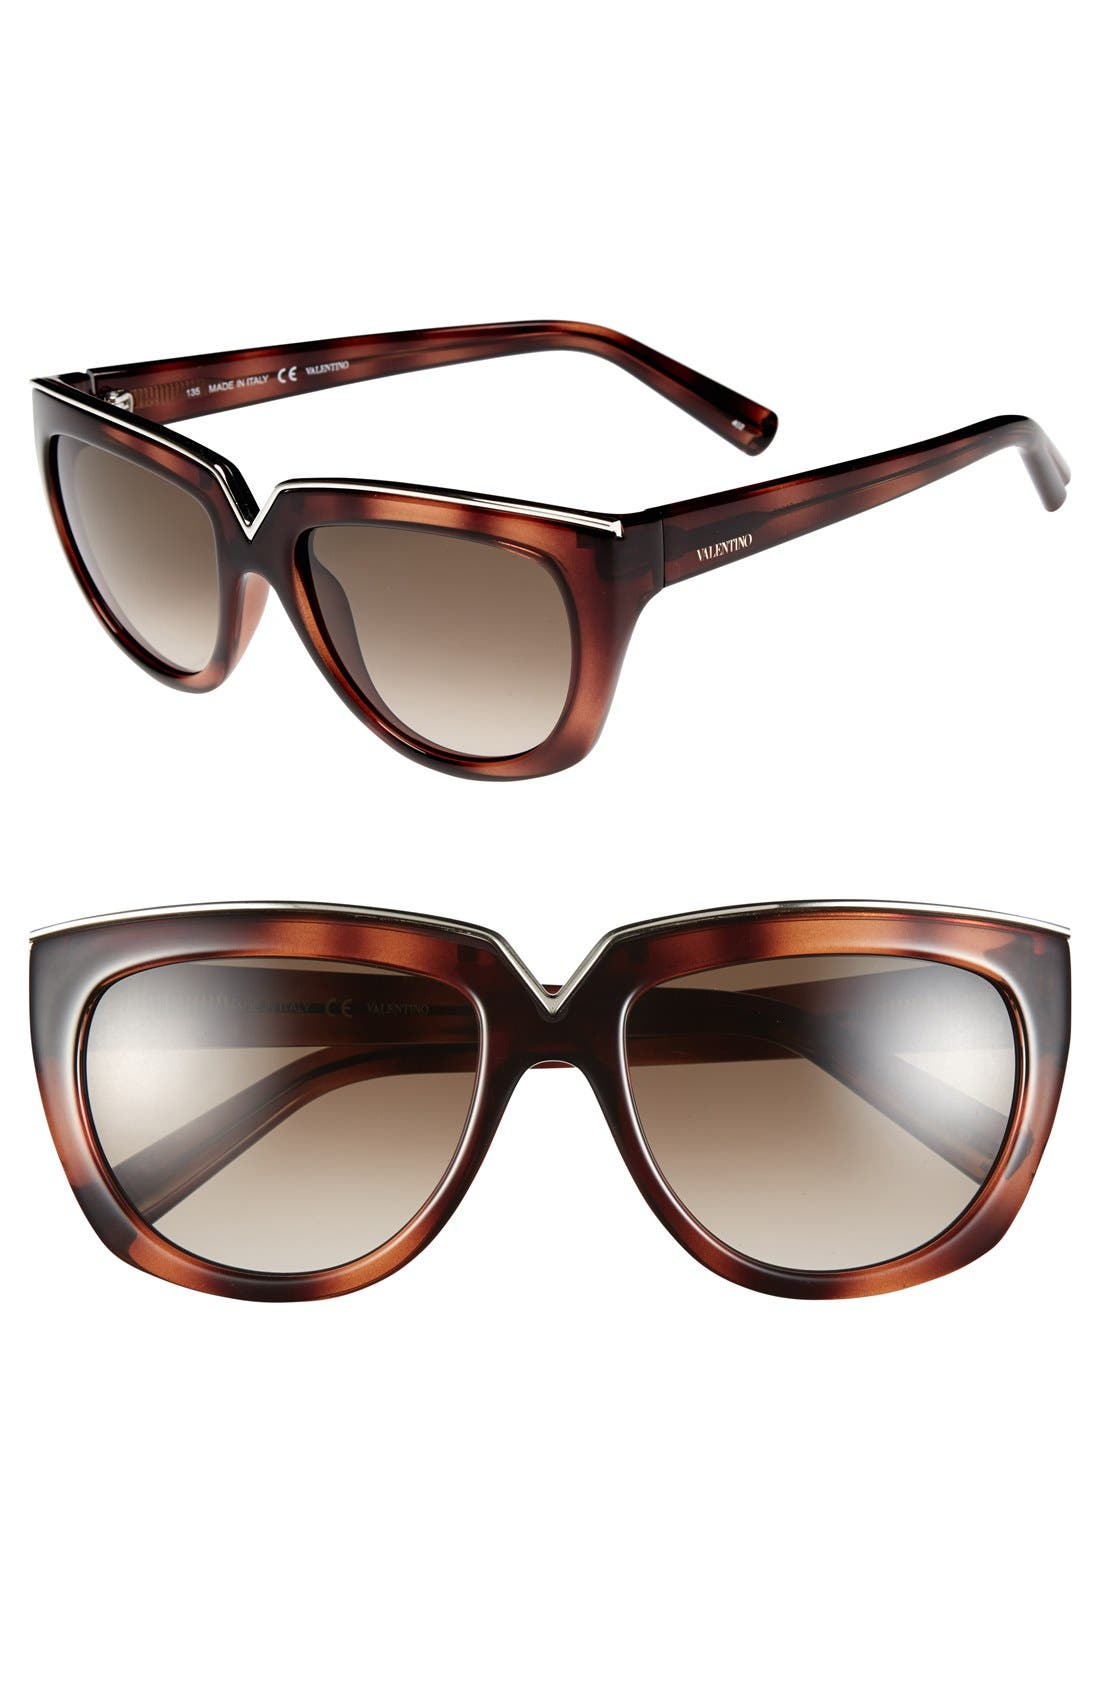 Alternate Image 1 Selected - Valentino 54mm Gradient Lens Sunglasses